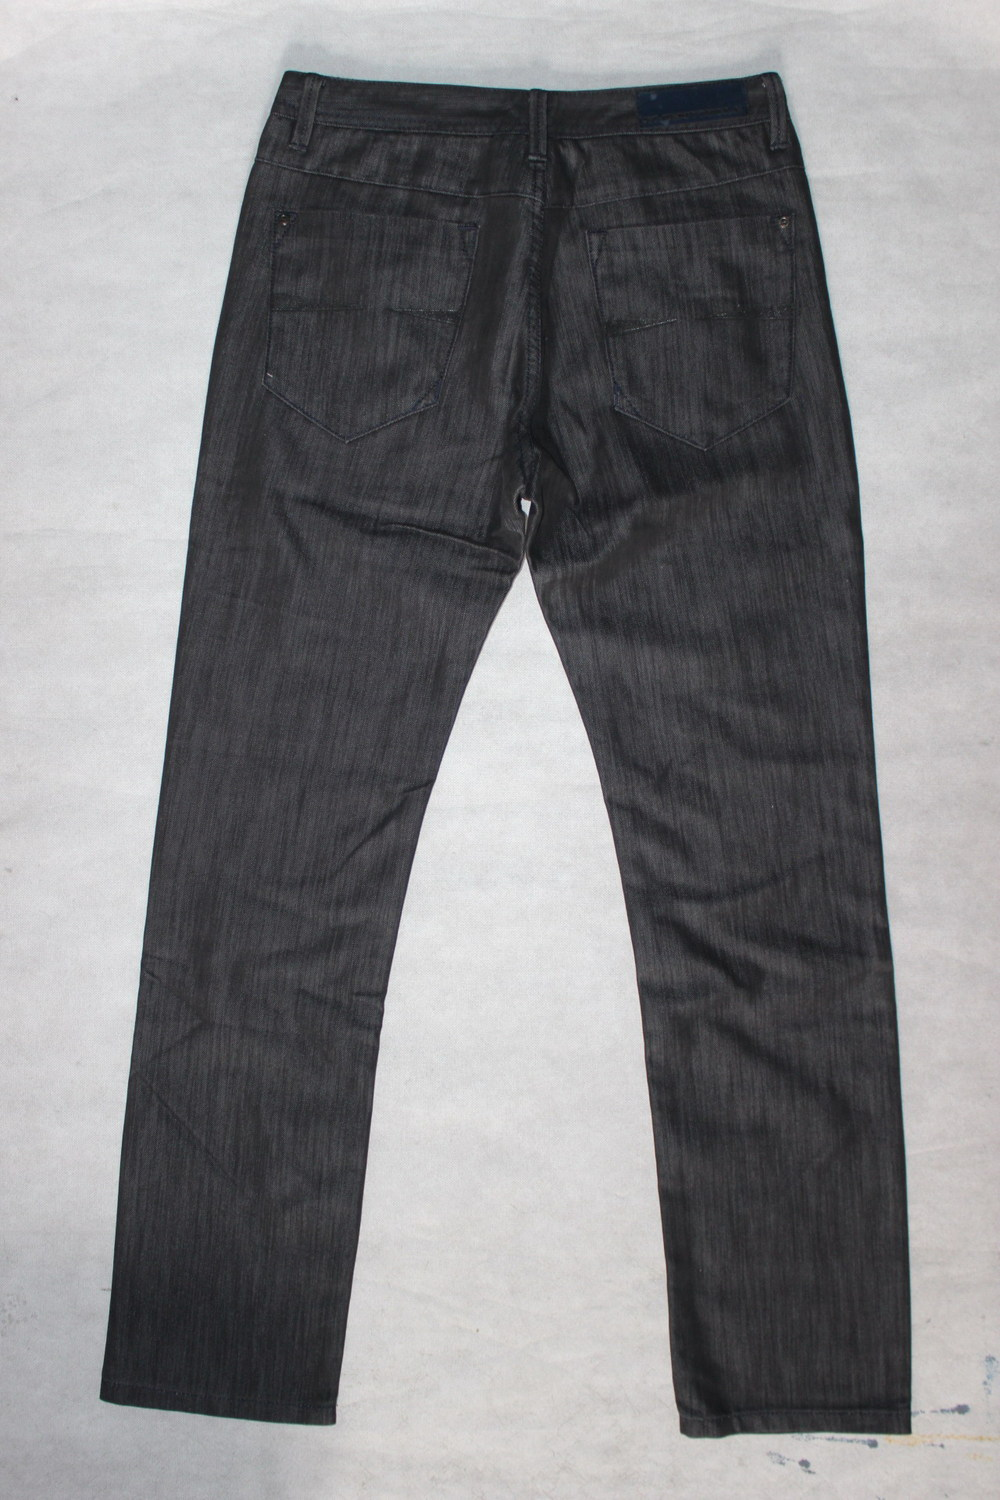 GZY China Factory Sells directly stock jeans hong kong wholesale price jeans pants stock lot